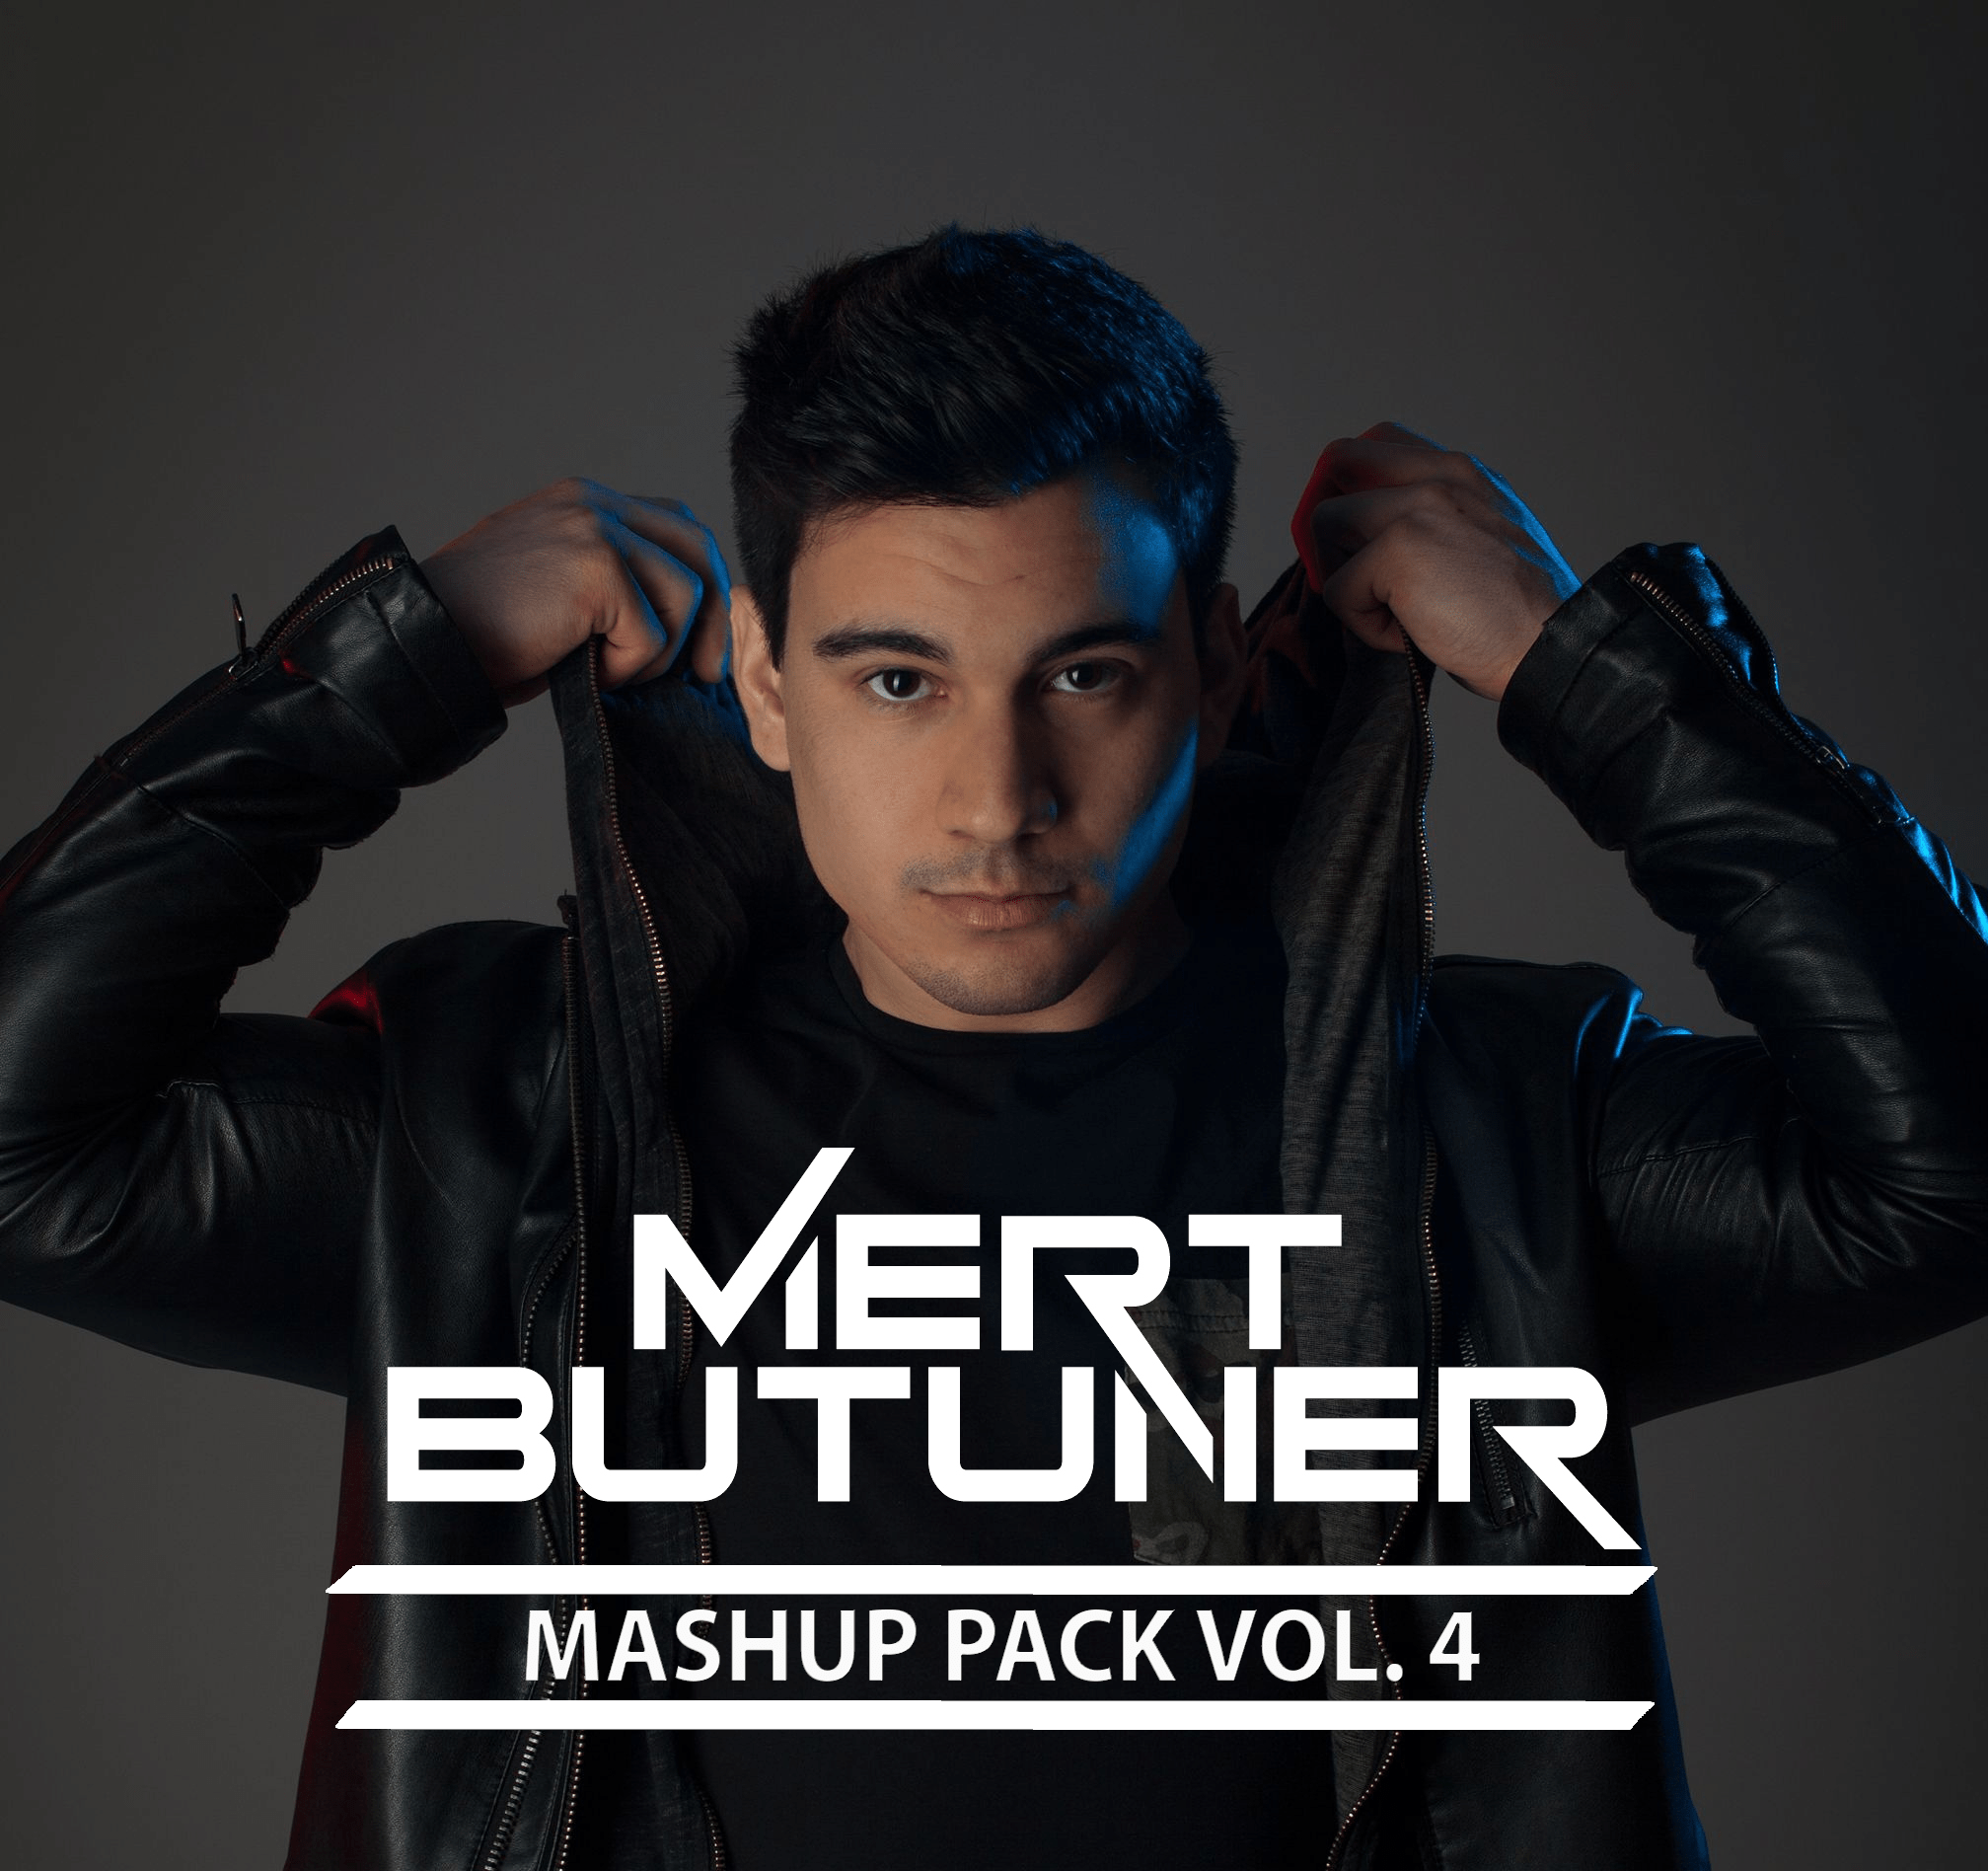 mashup_pack_vol.4.png